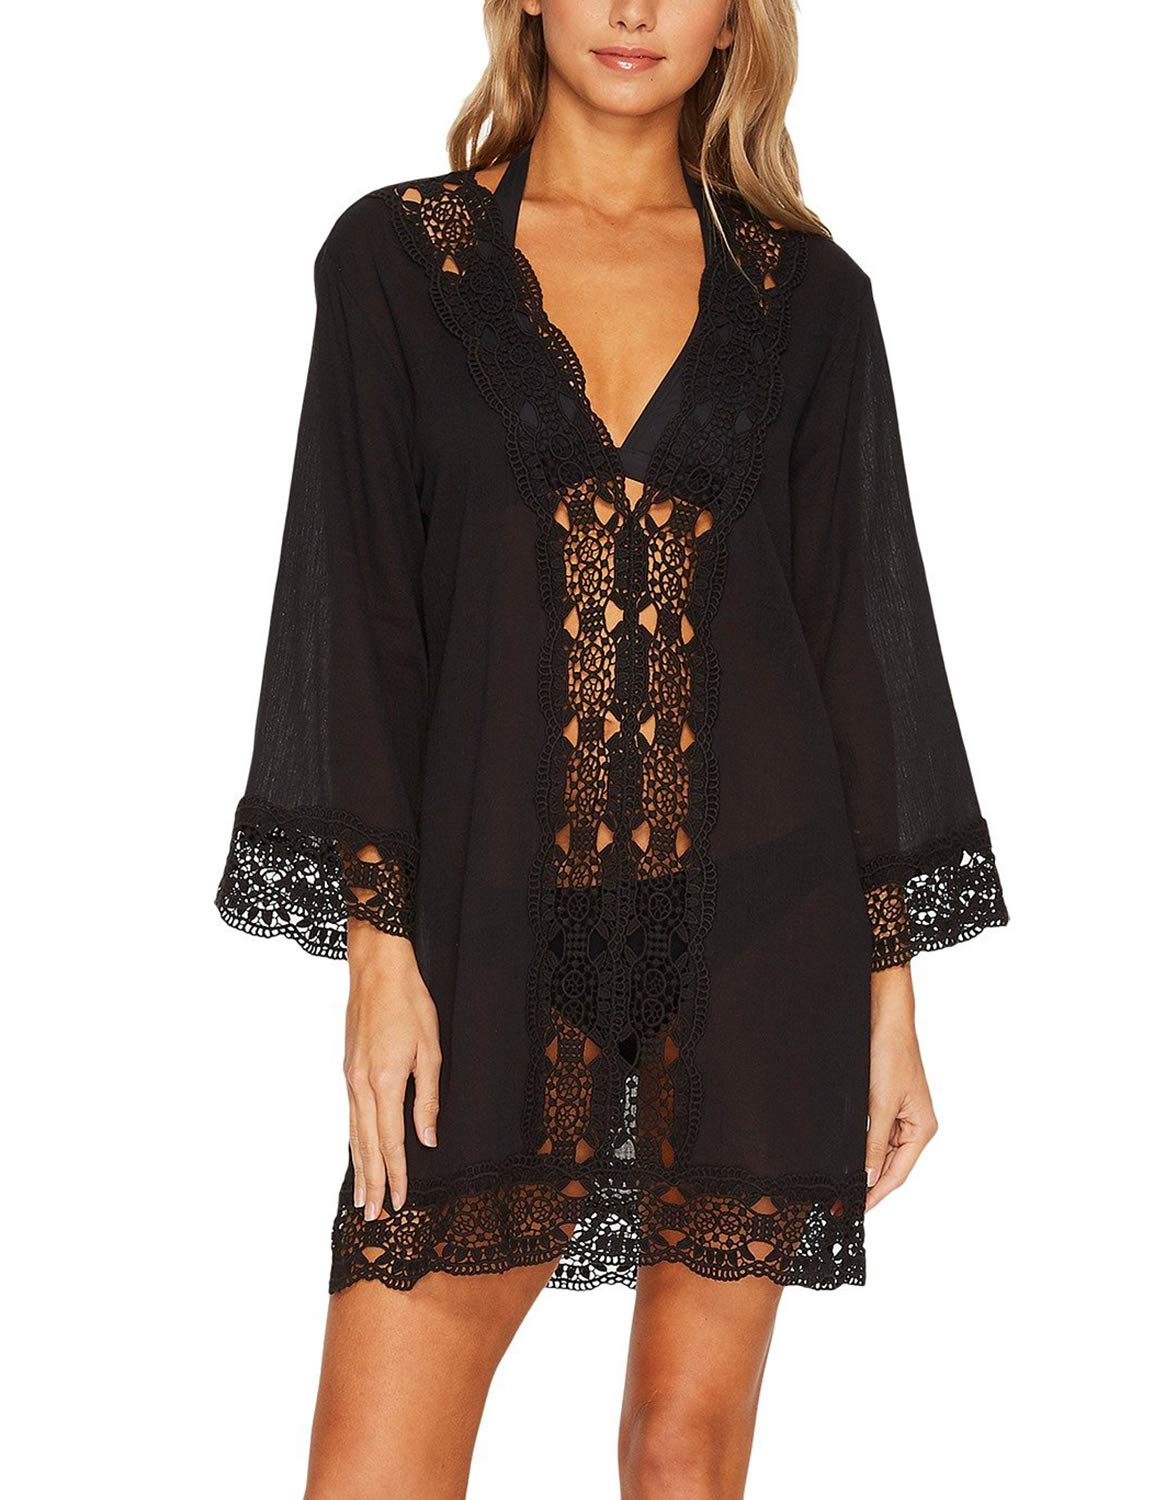 Women's V Neck Top Chiffon Pullovers Kimono Bell Sleeve Lace Cover Ups Green